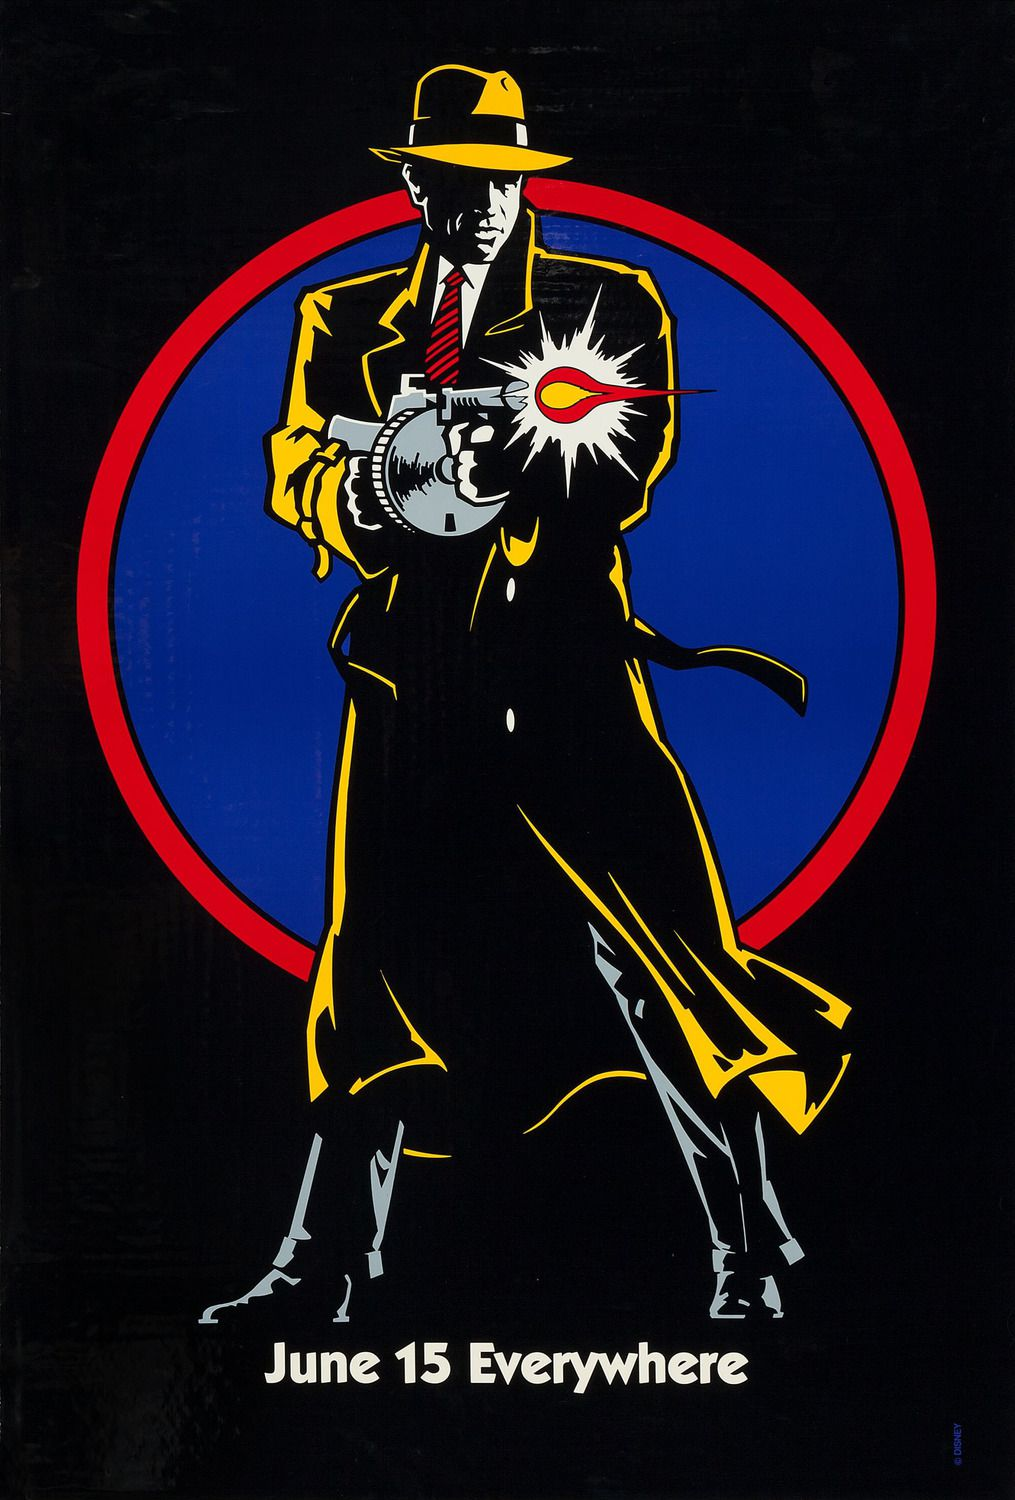 Dick Tracy (1990) - classic 90s poster collection